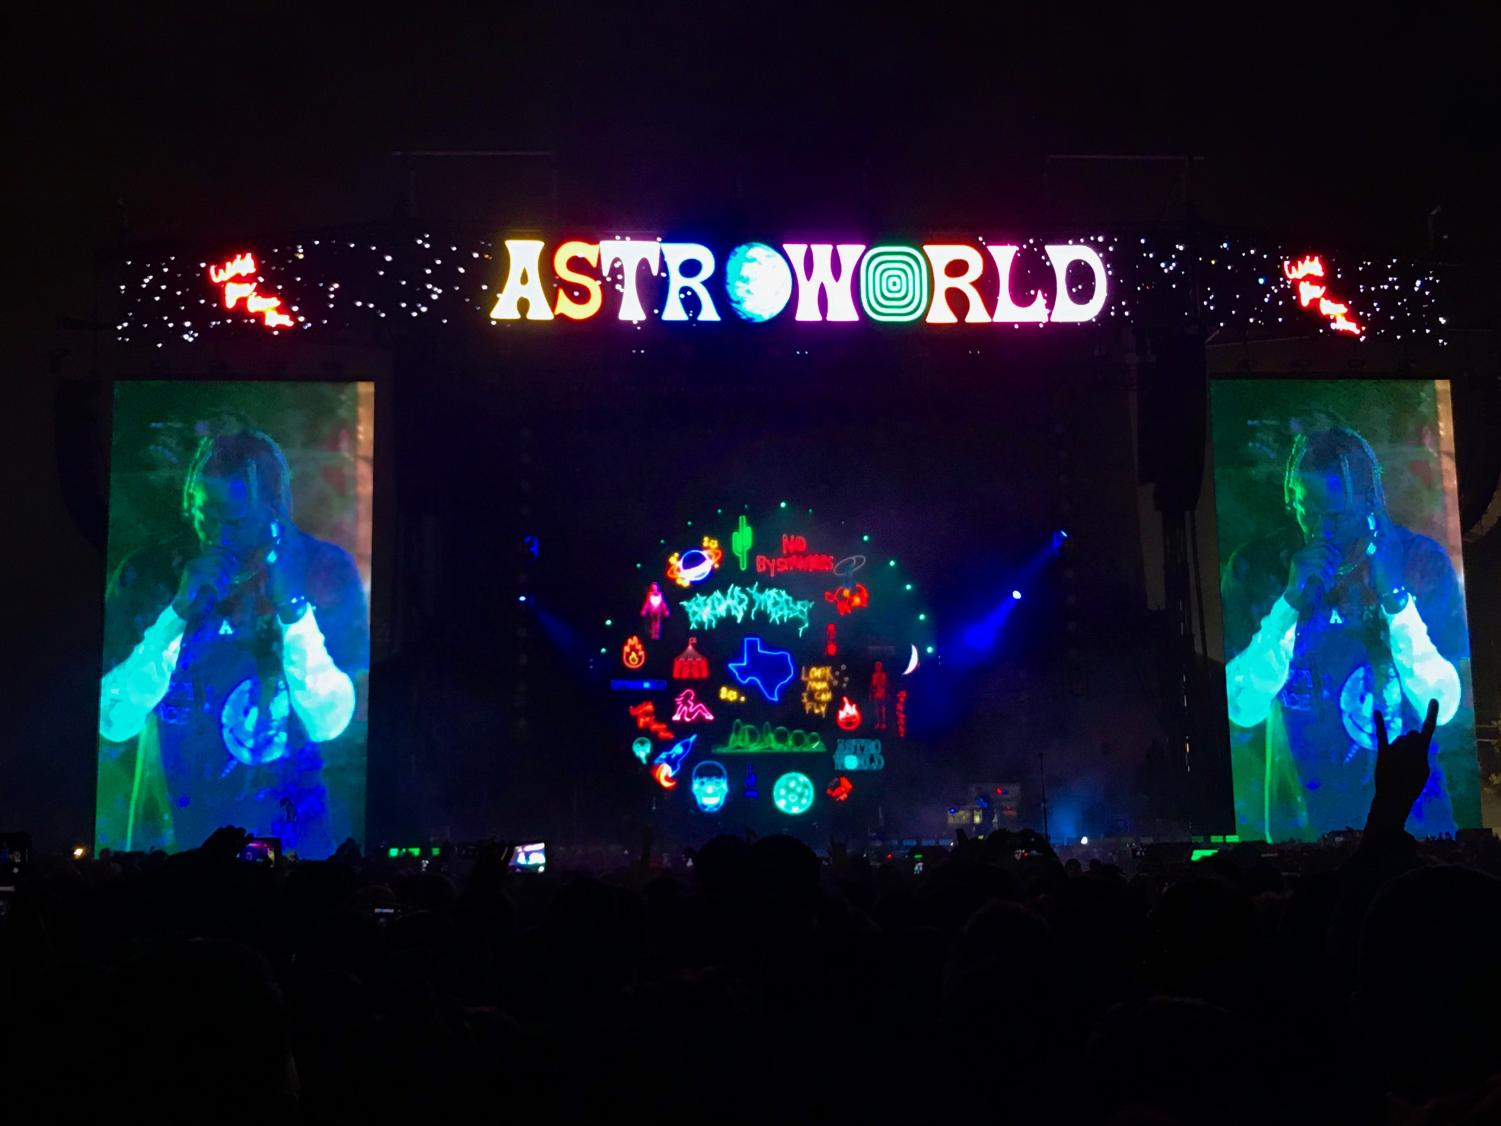 Astroworld was a music festival that will be among the most hyped in years to come.